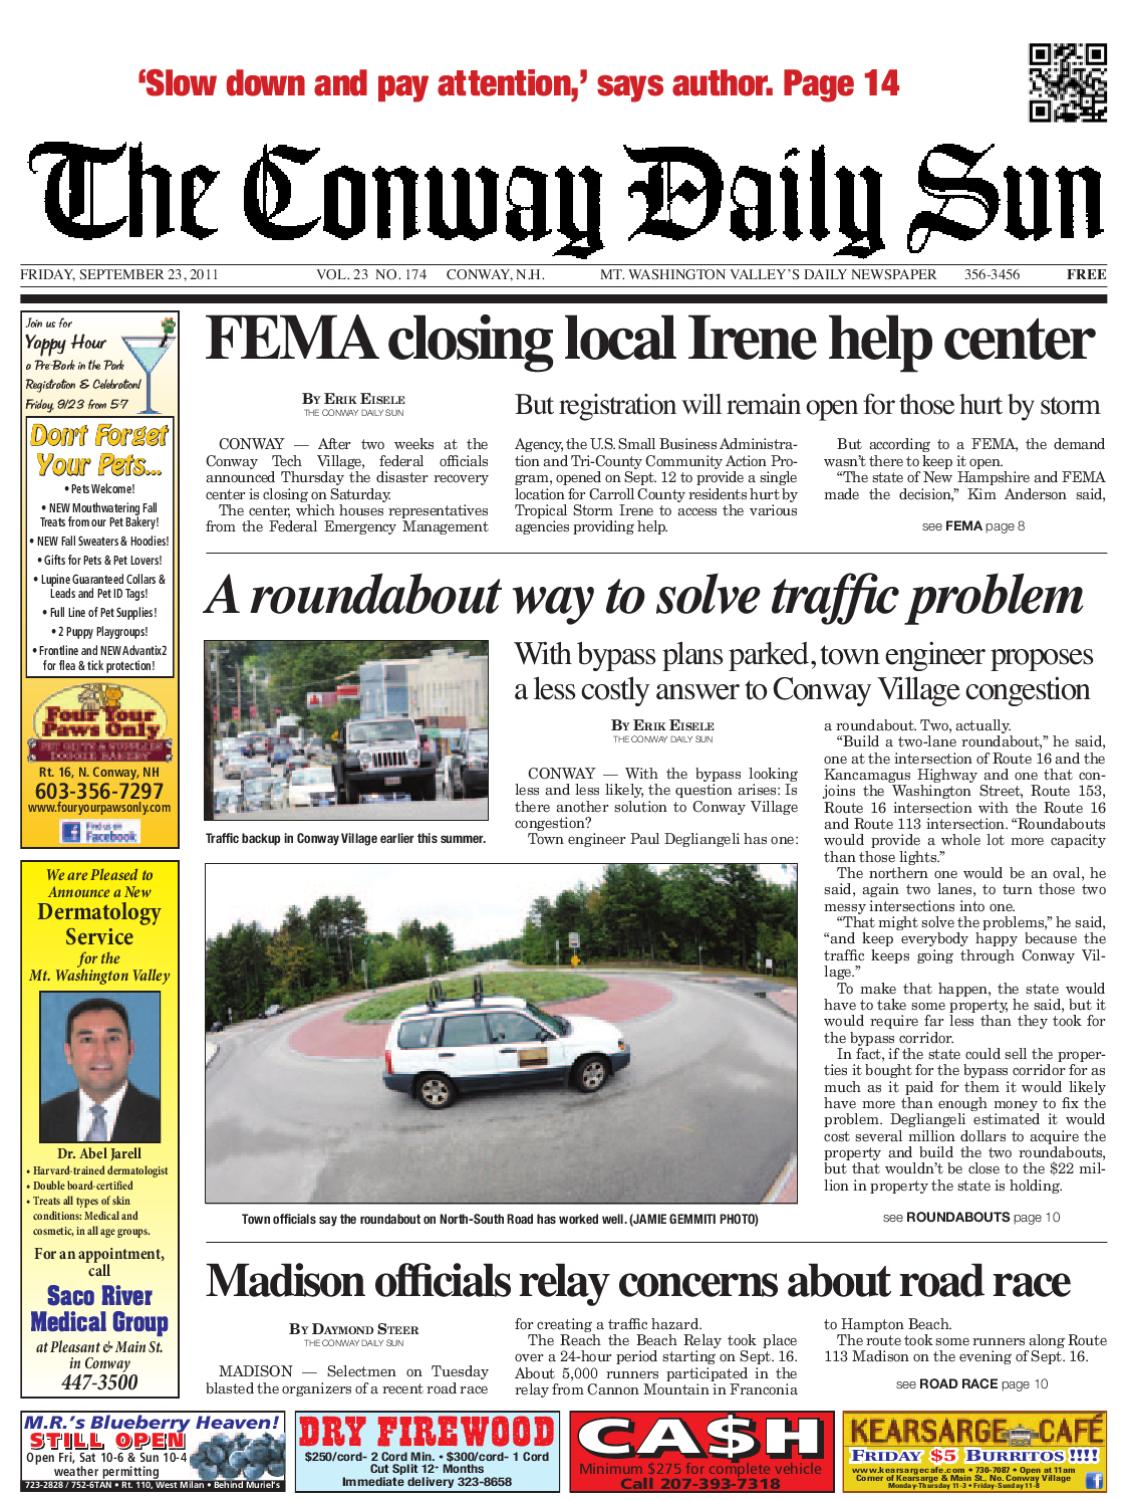 The Conway Daily Sun, Friday, September 23, 2011 by Daily